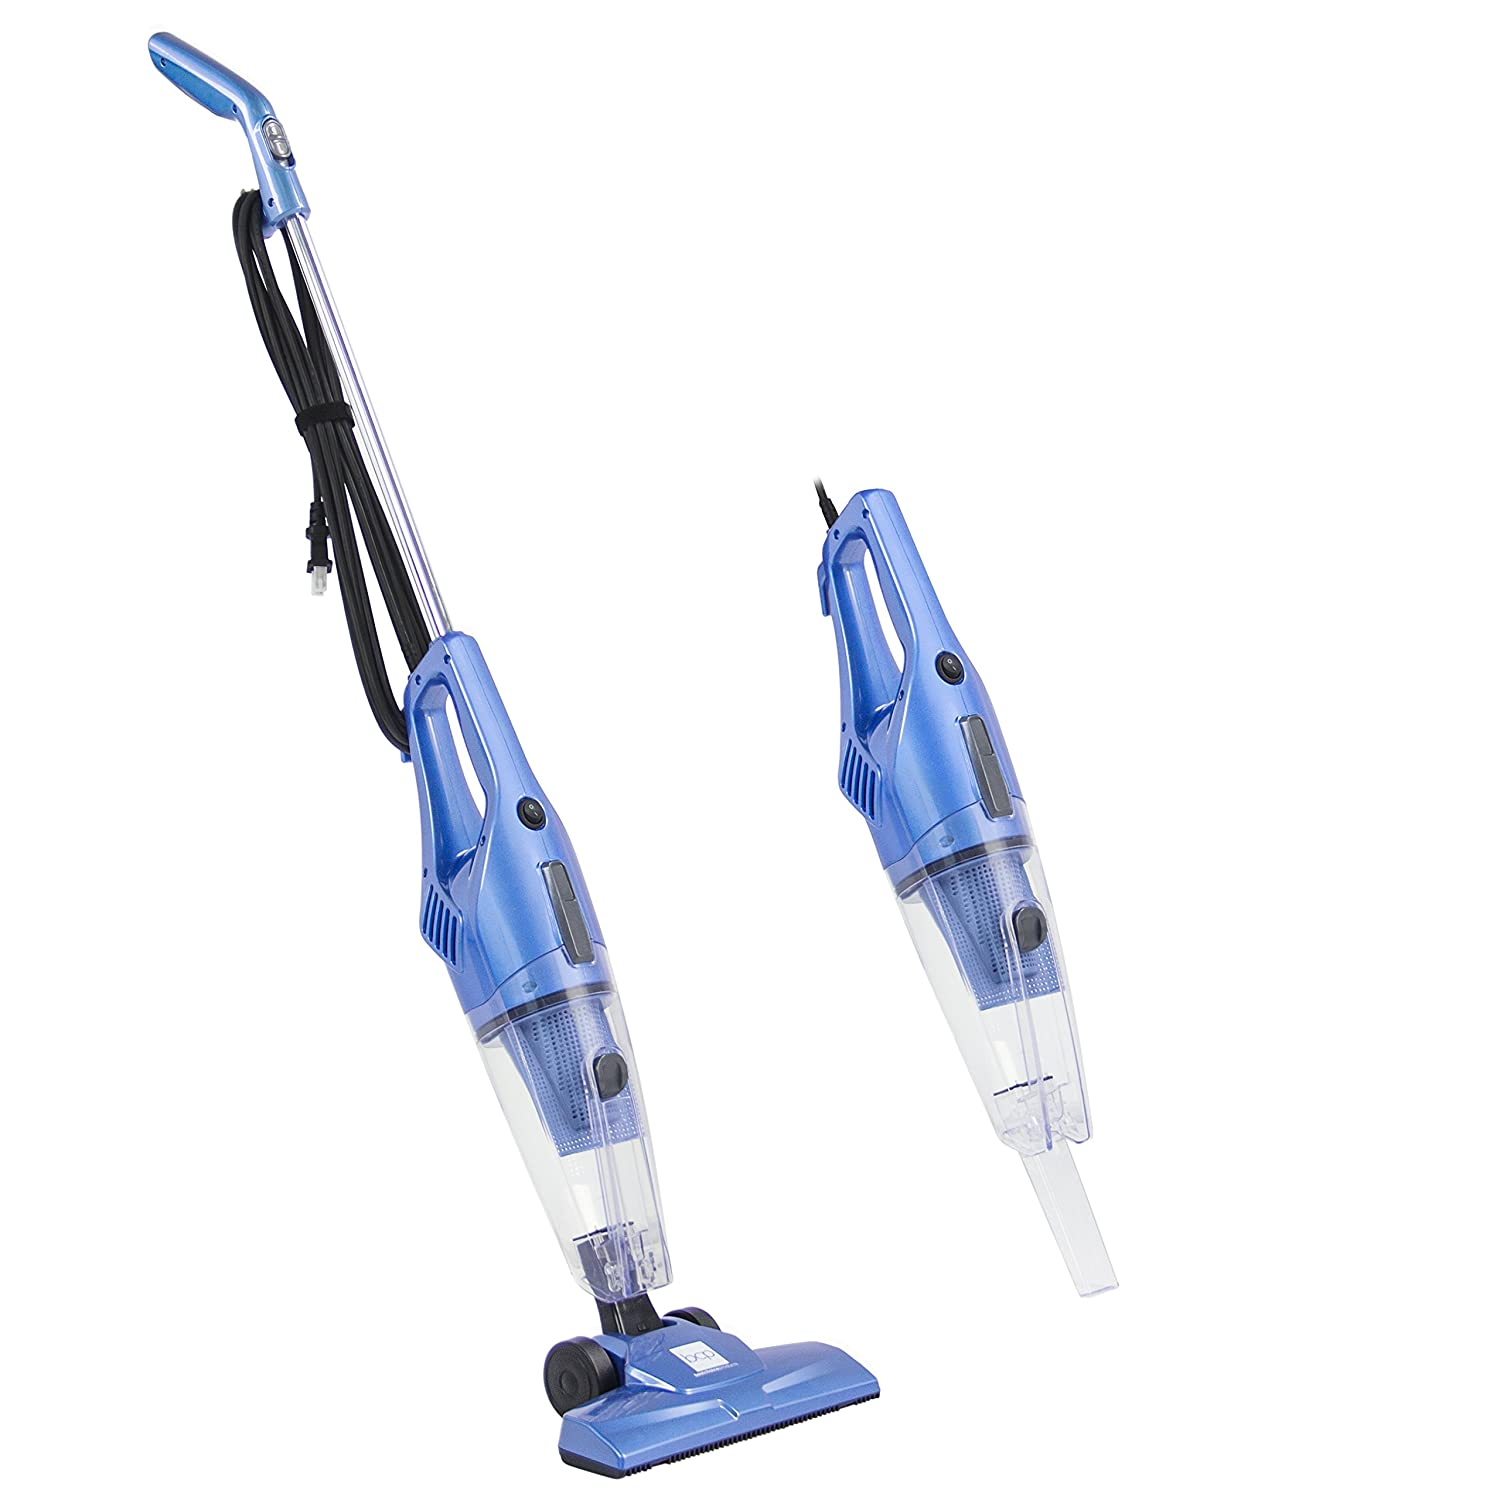 Best Vacuum Cleaner 2013: Best Choice Products 600W 2-IN-1 Upright Stick And